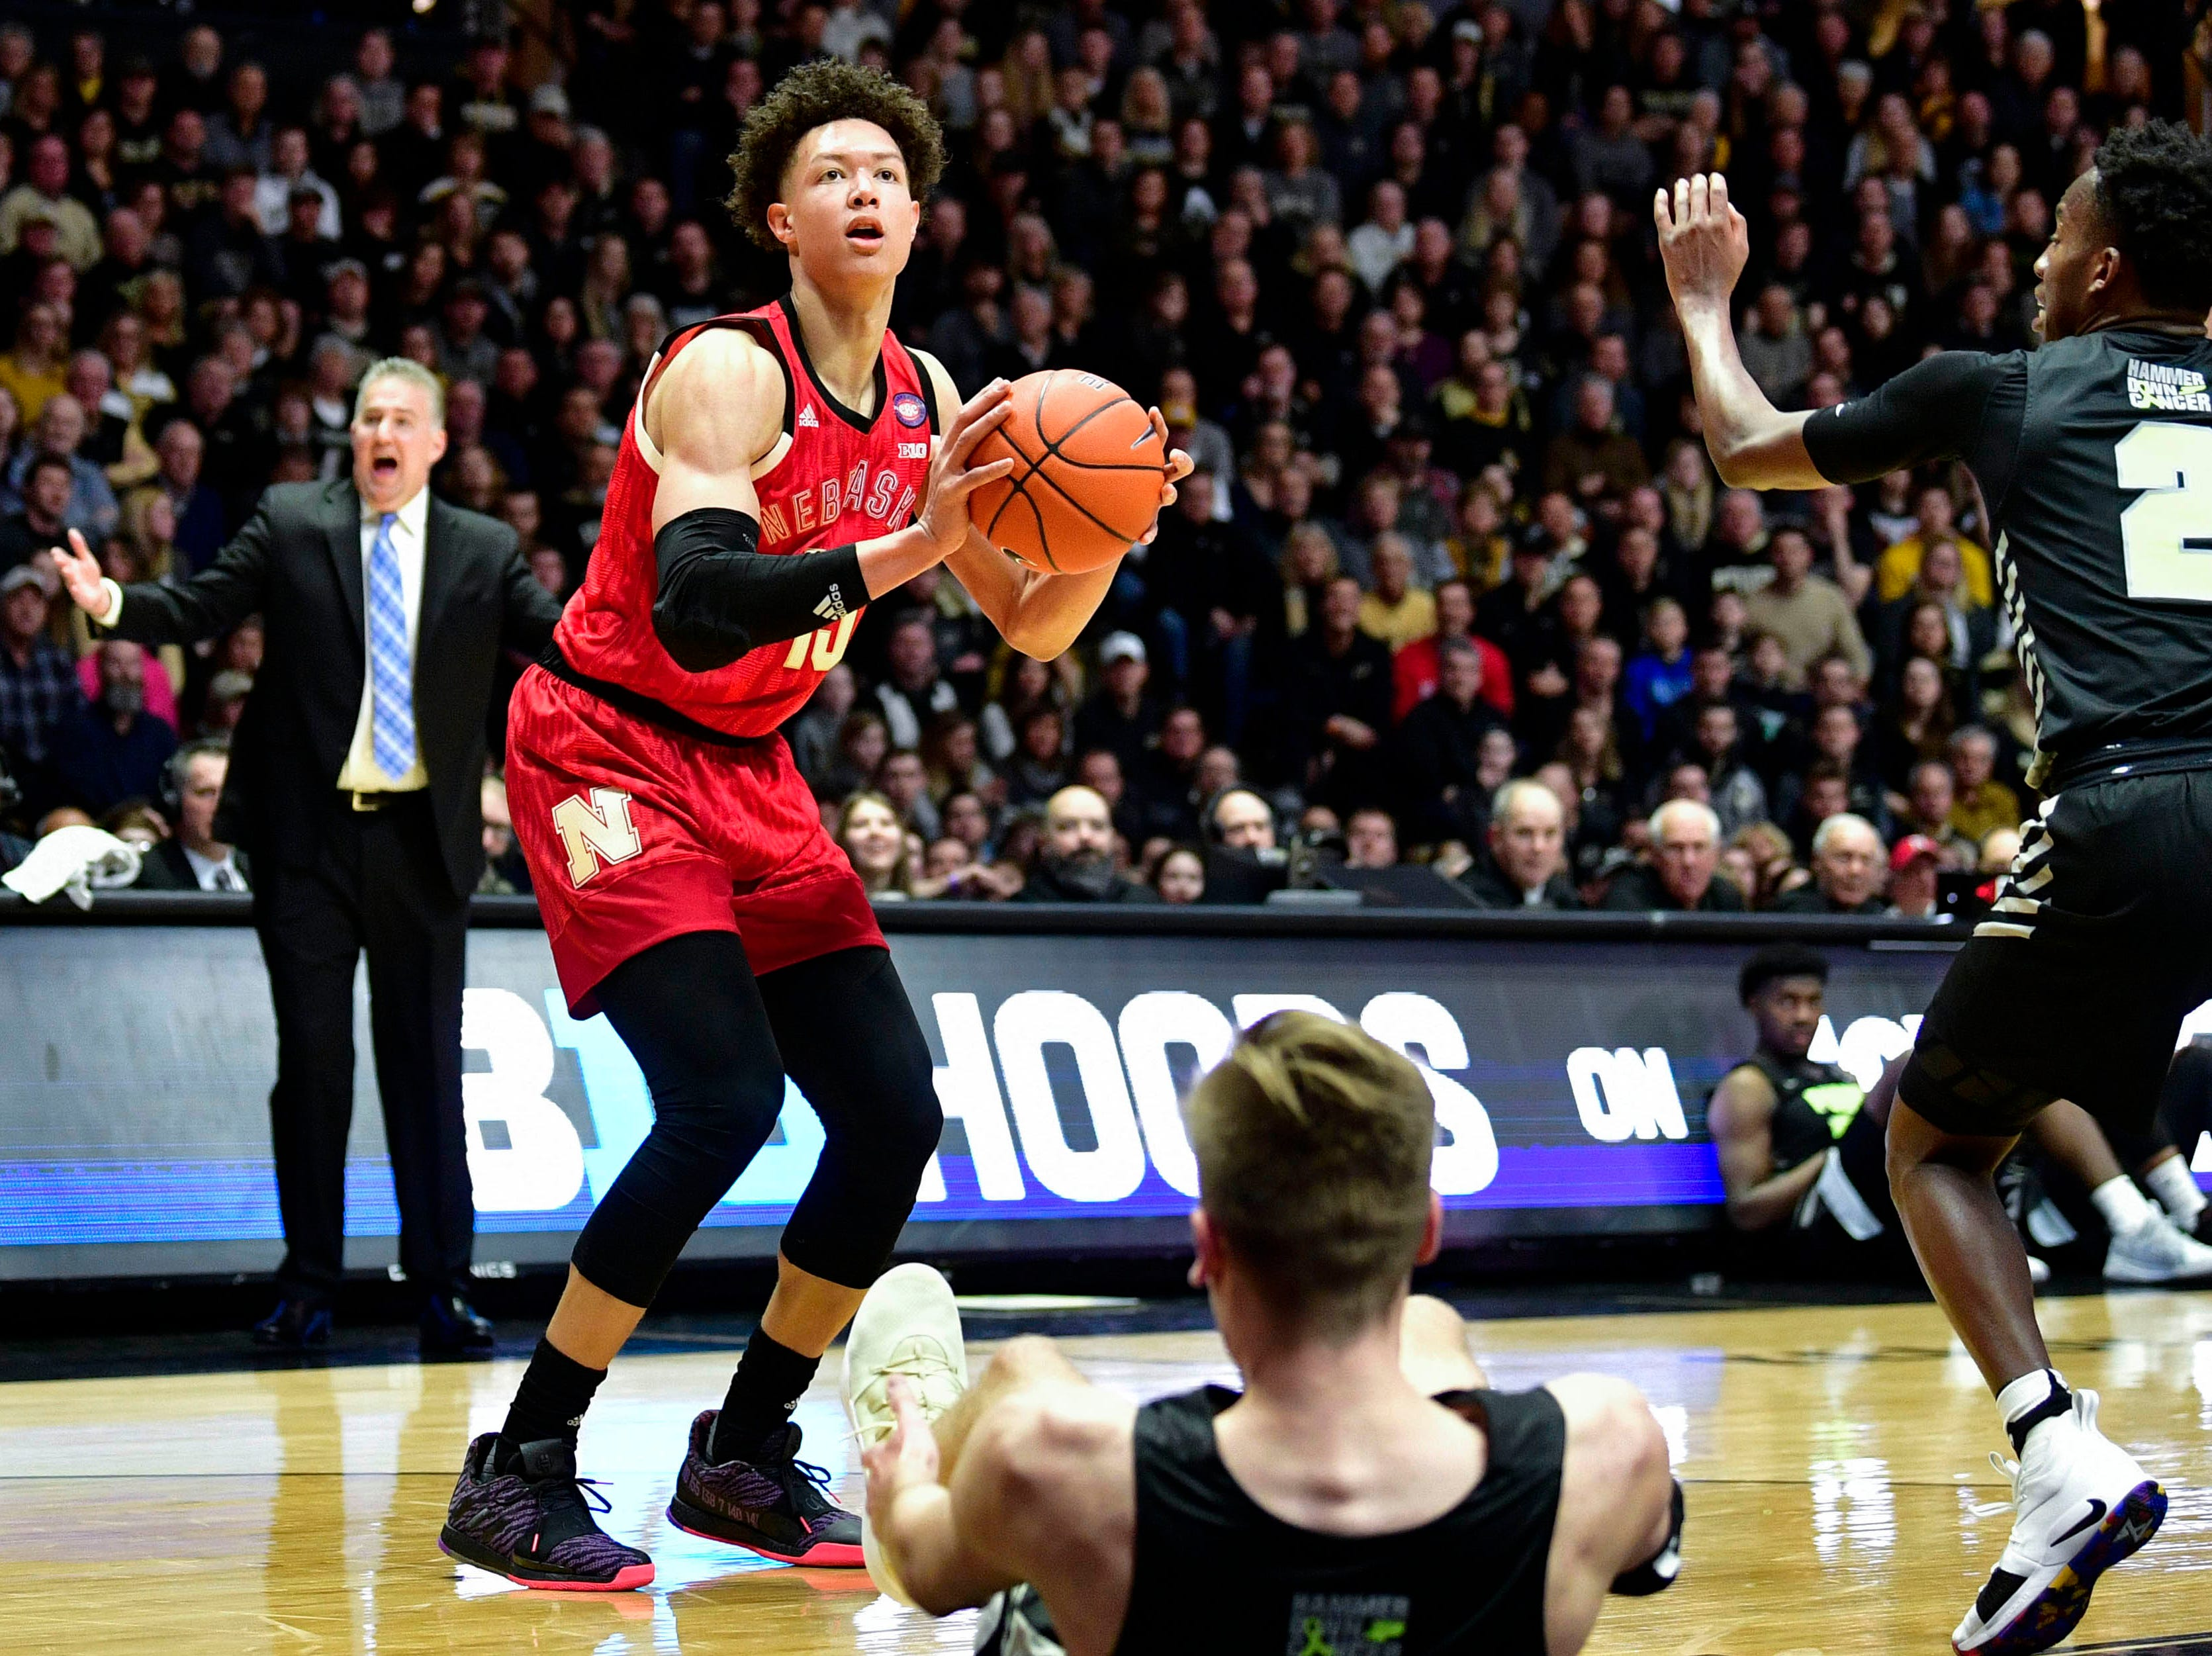 Nebraska Cornhuskers forward Isaiah Roby (15) attempts a shot over a downed Purdue Boilermakers center Matt Haarms (32) during the first half of the game at Mackey Arena.